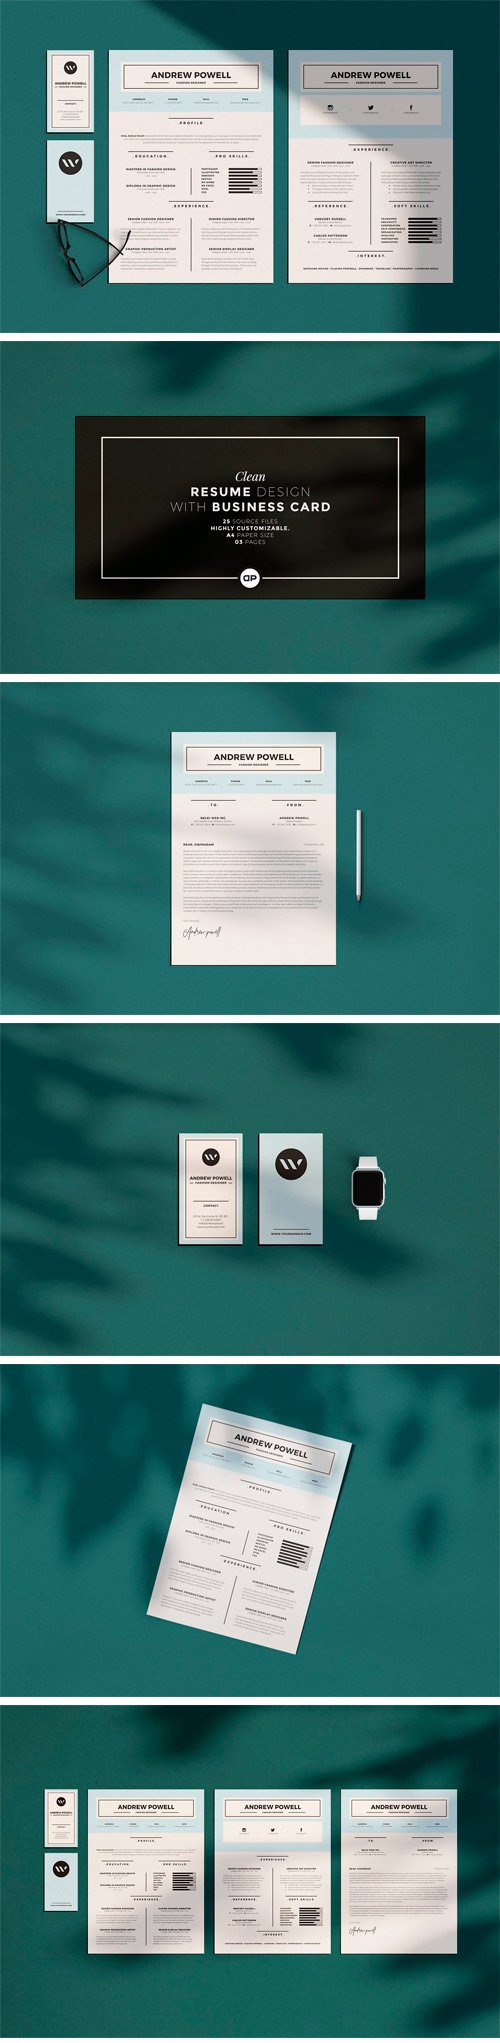 CM - Clean Resume with Business Card 2950309